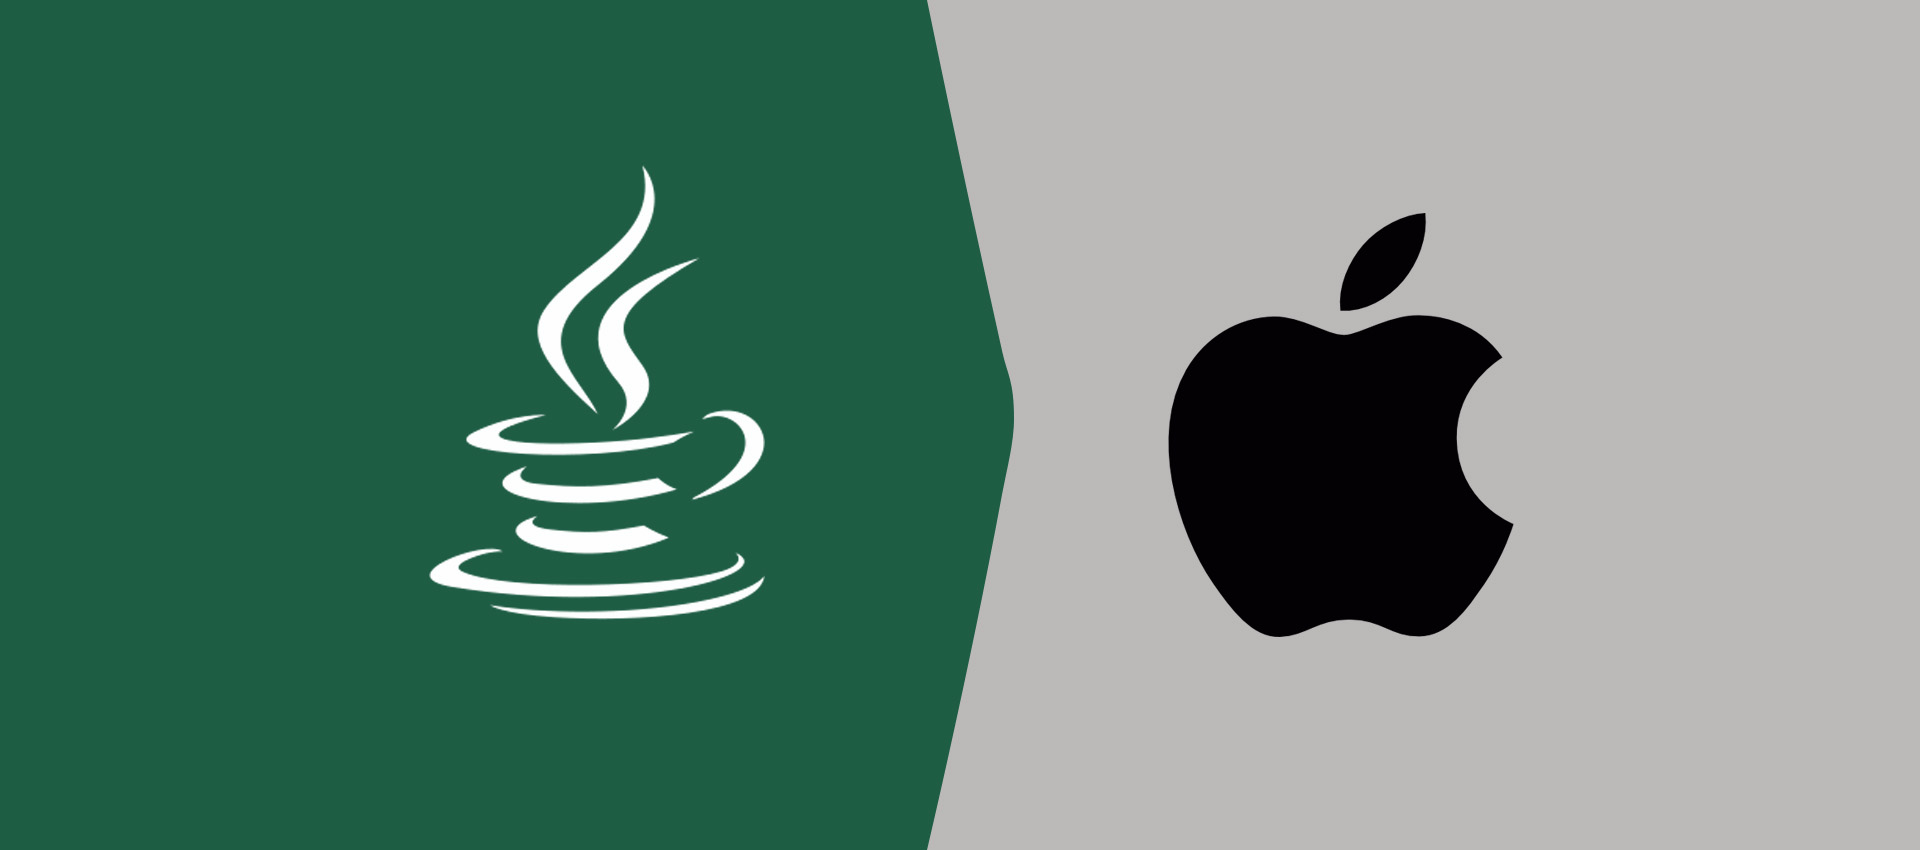 How To Install Java 8 On Mac